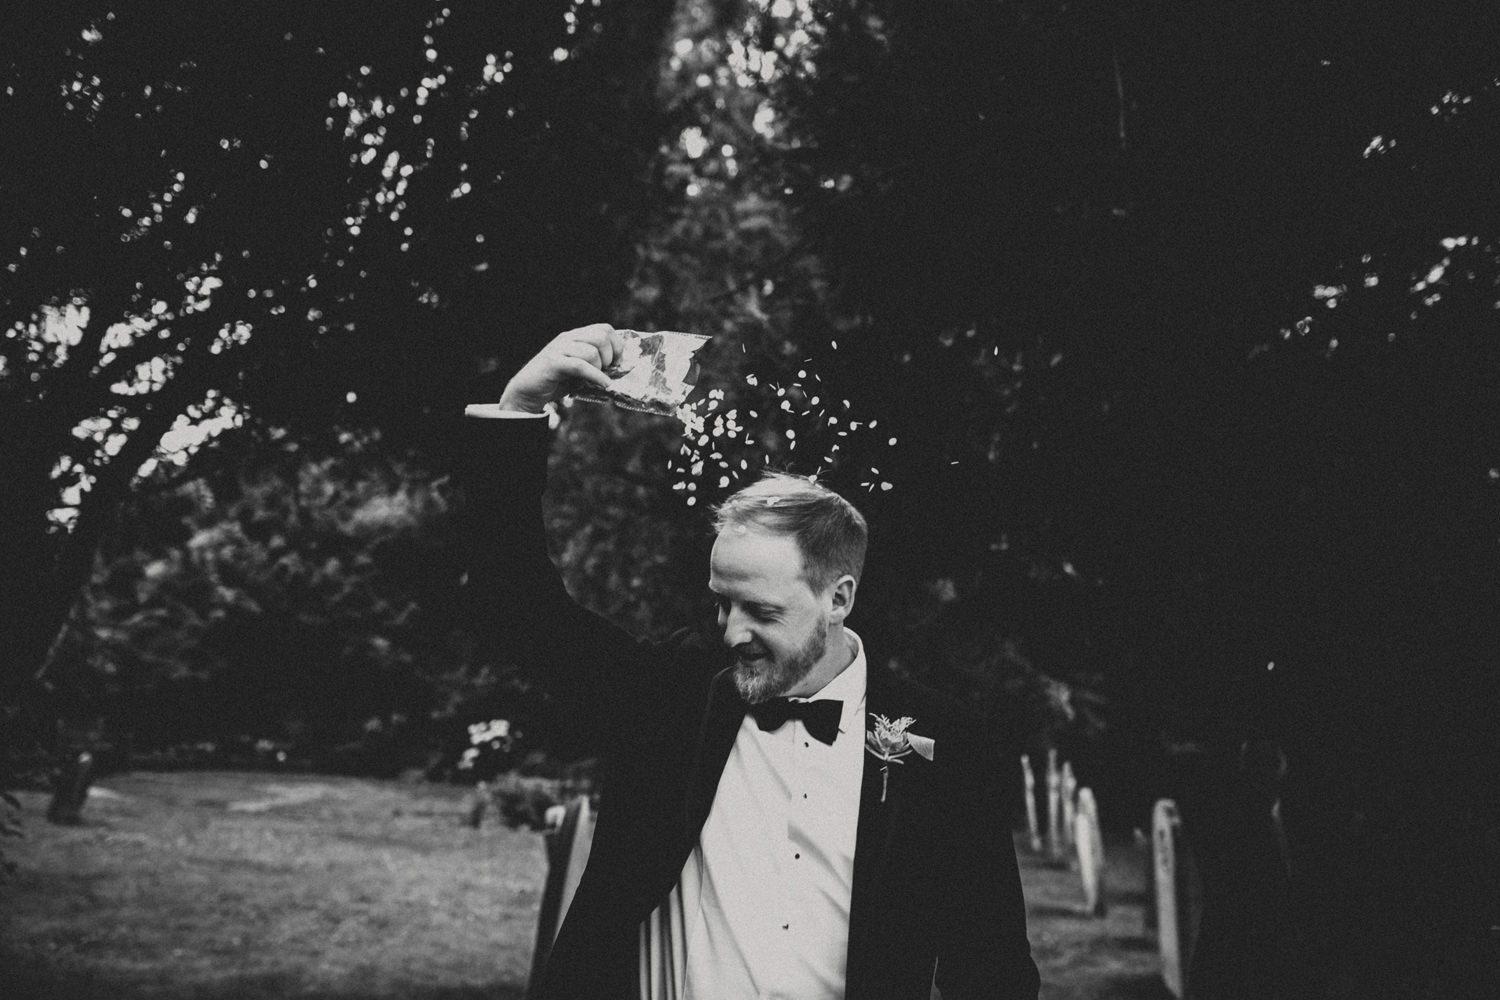 groom playing with confettis after alternative wedding uk